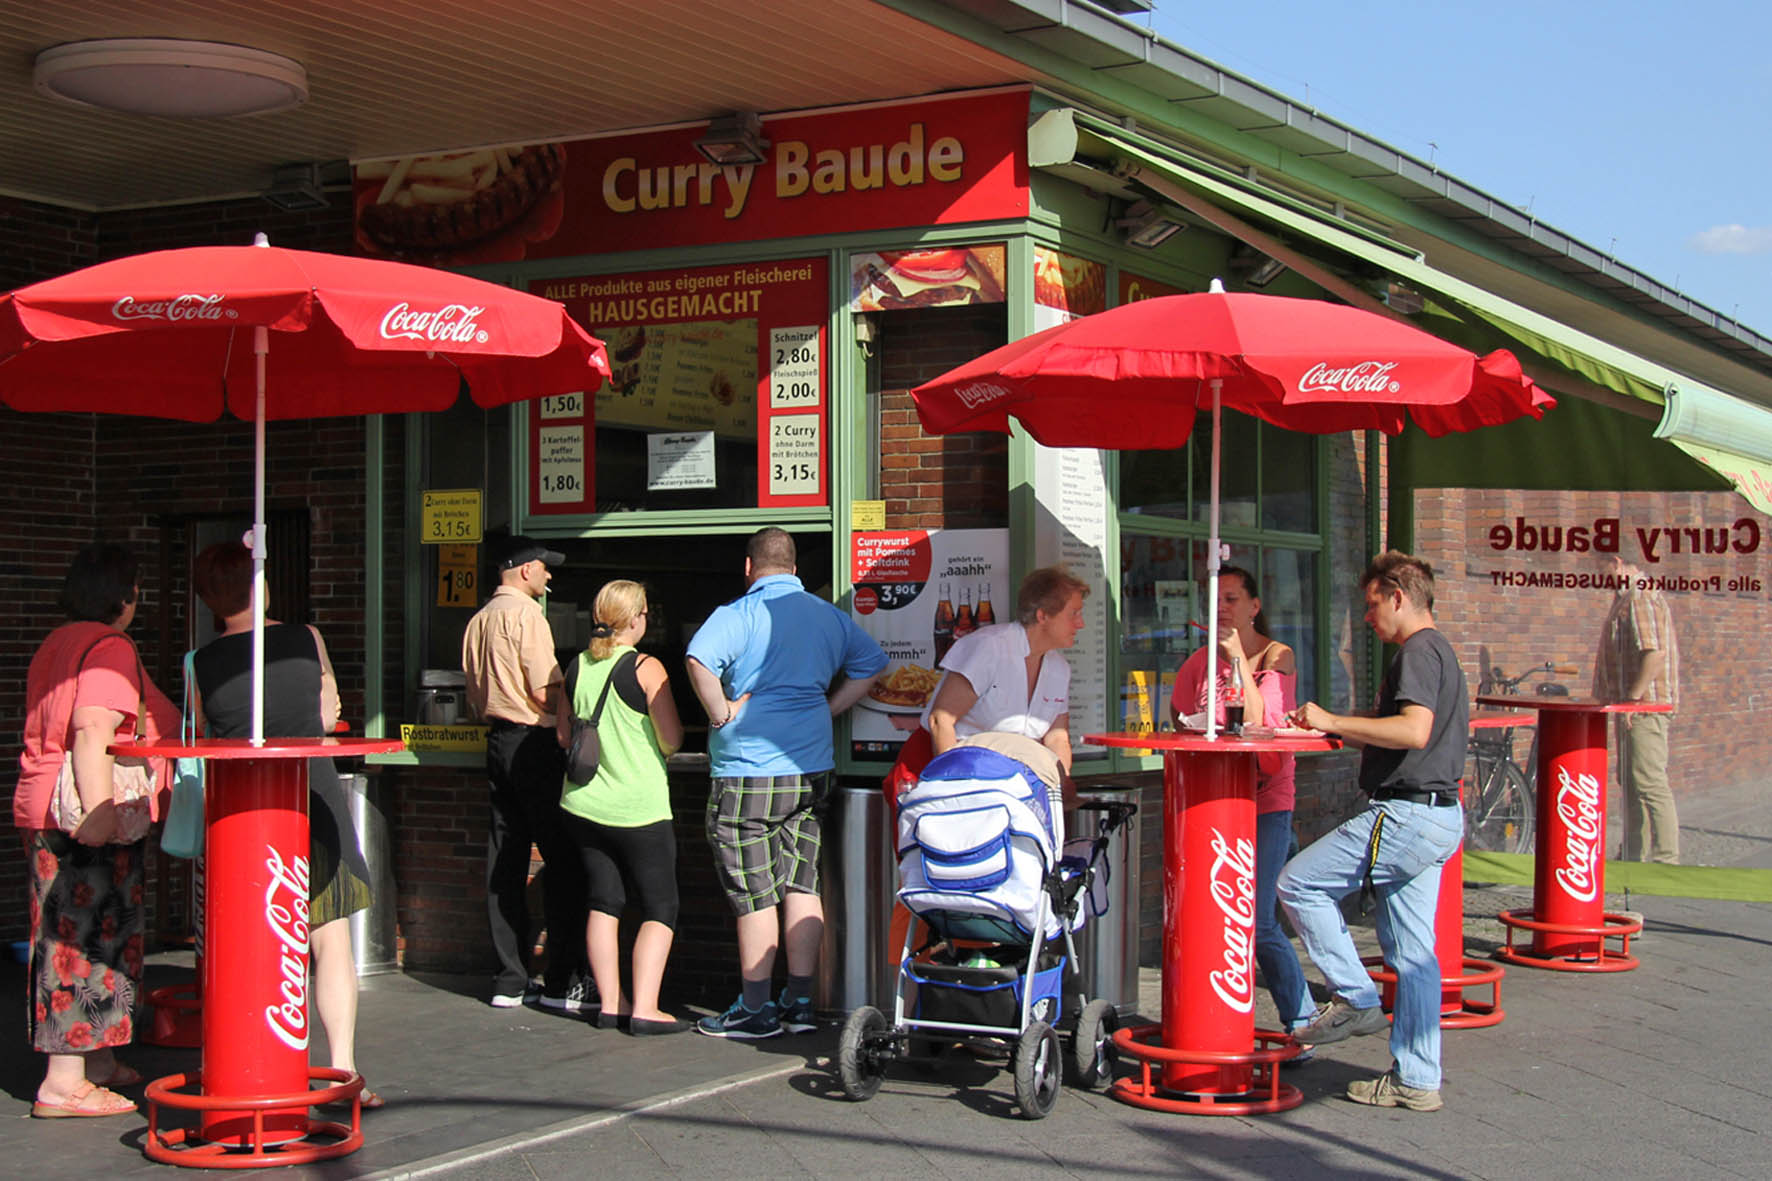 Curry Baude Currywurst Kiosk in Berlin Gesundbrunnen